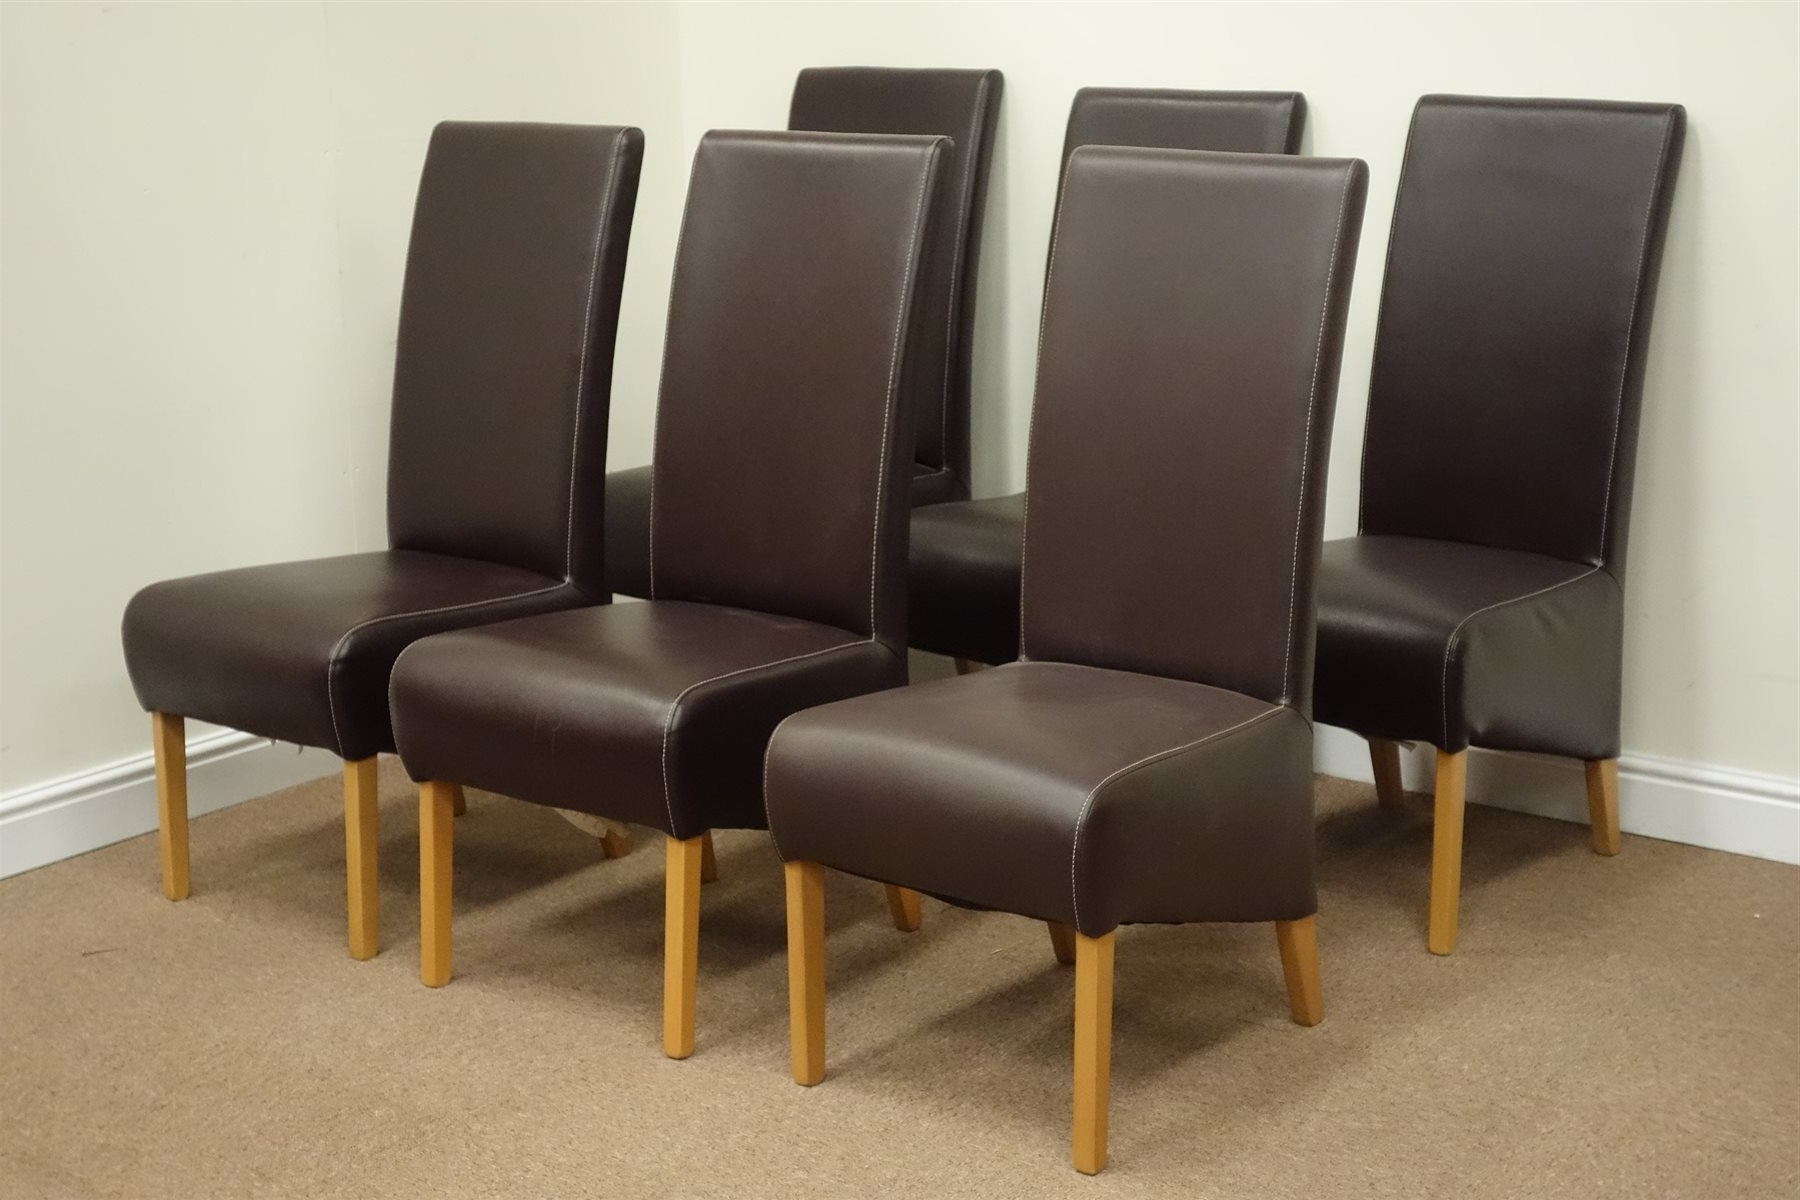 Set Six Oak Framed High Back Dining Chairs Upholstered In Brown Faux With Regard To 2017 High Back Leather Dining Chairs (View 14 of 25)